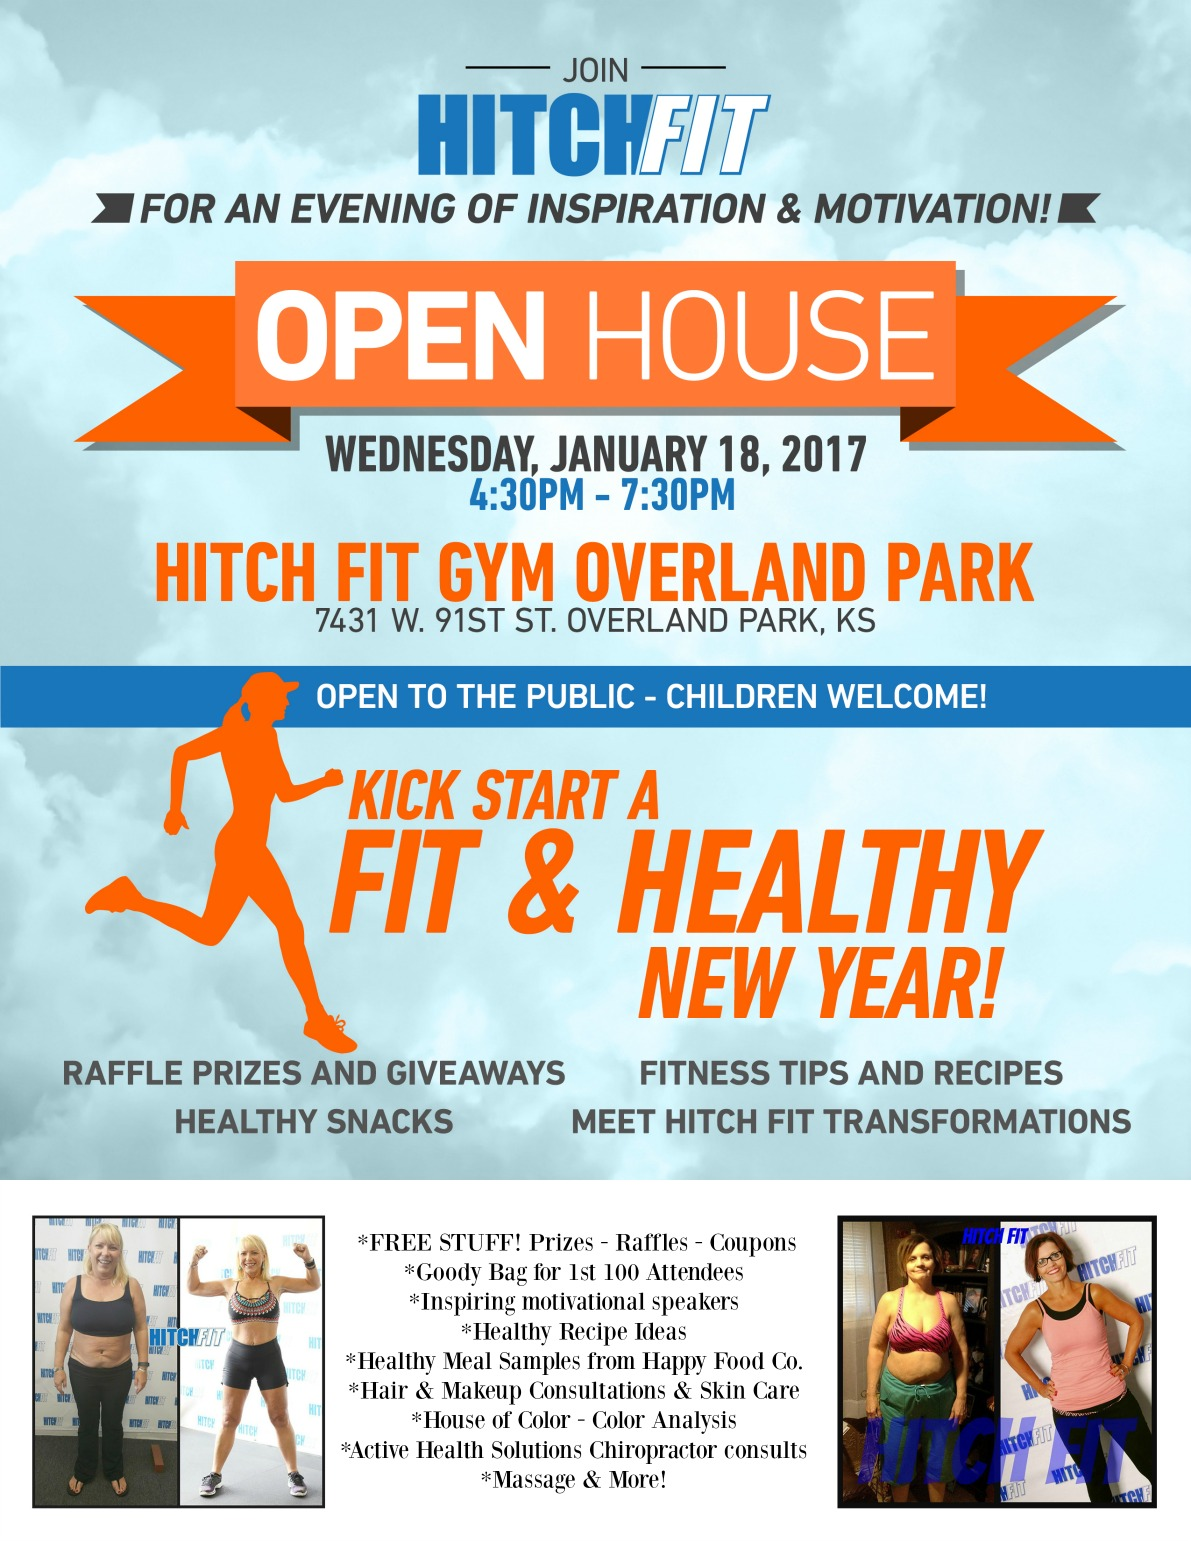 New Year New You Open House Inspiration Motivation & PRIZES